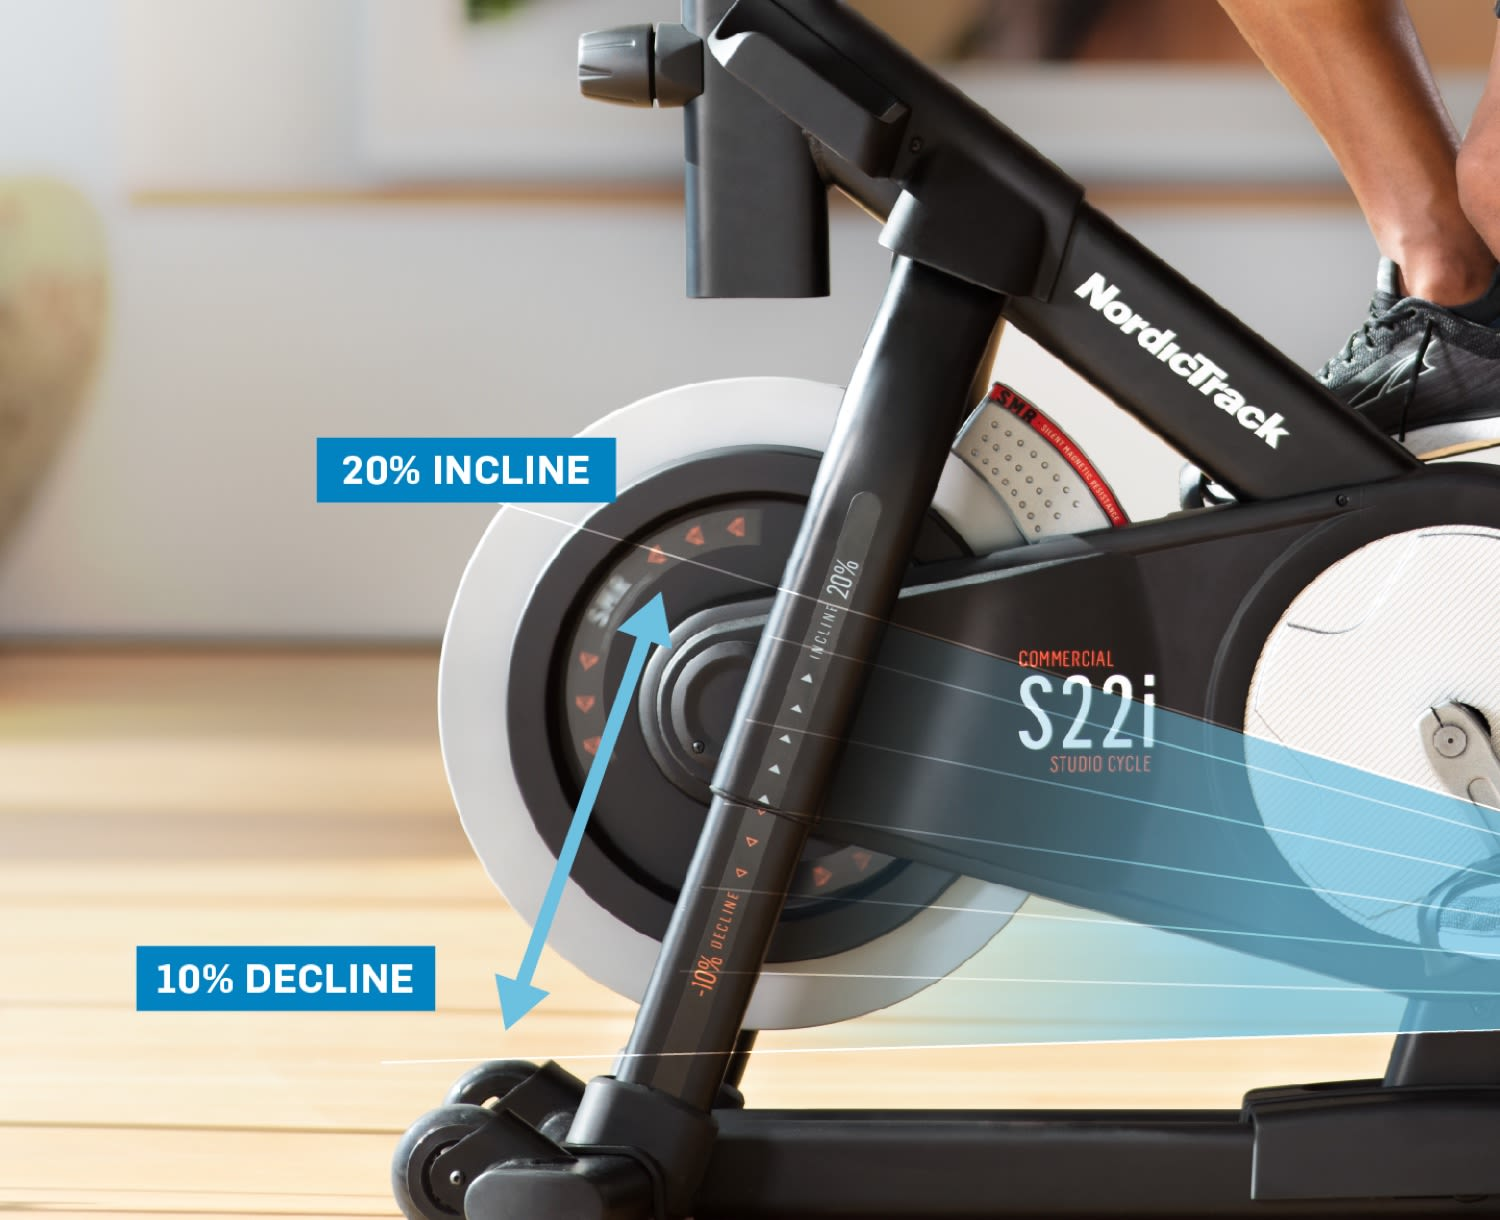 NordicTrack Com. S22i Studio Cycle